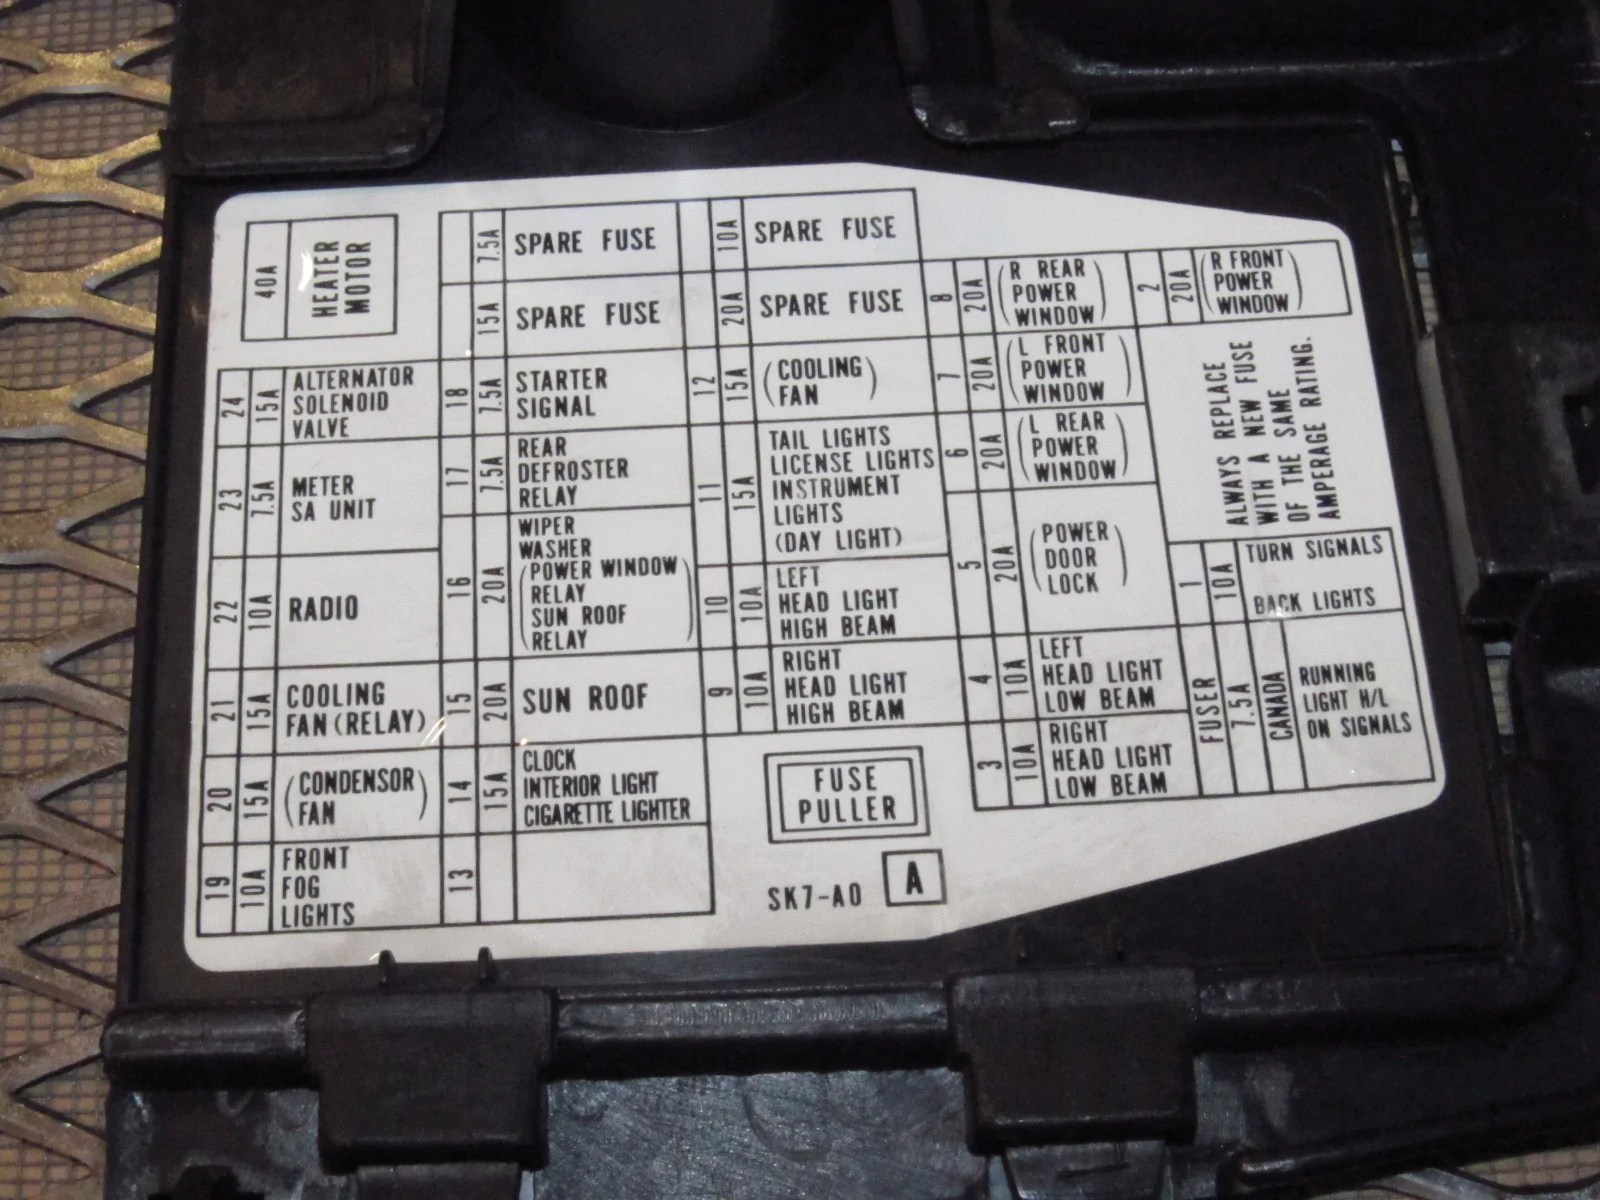 integra fuse box location wiring diagram todaysacura integra fuse box schematic diagrams mustang fuse box 90 [ 1600 x 1200 Pixel ]